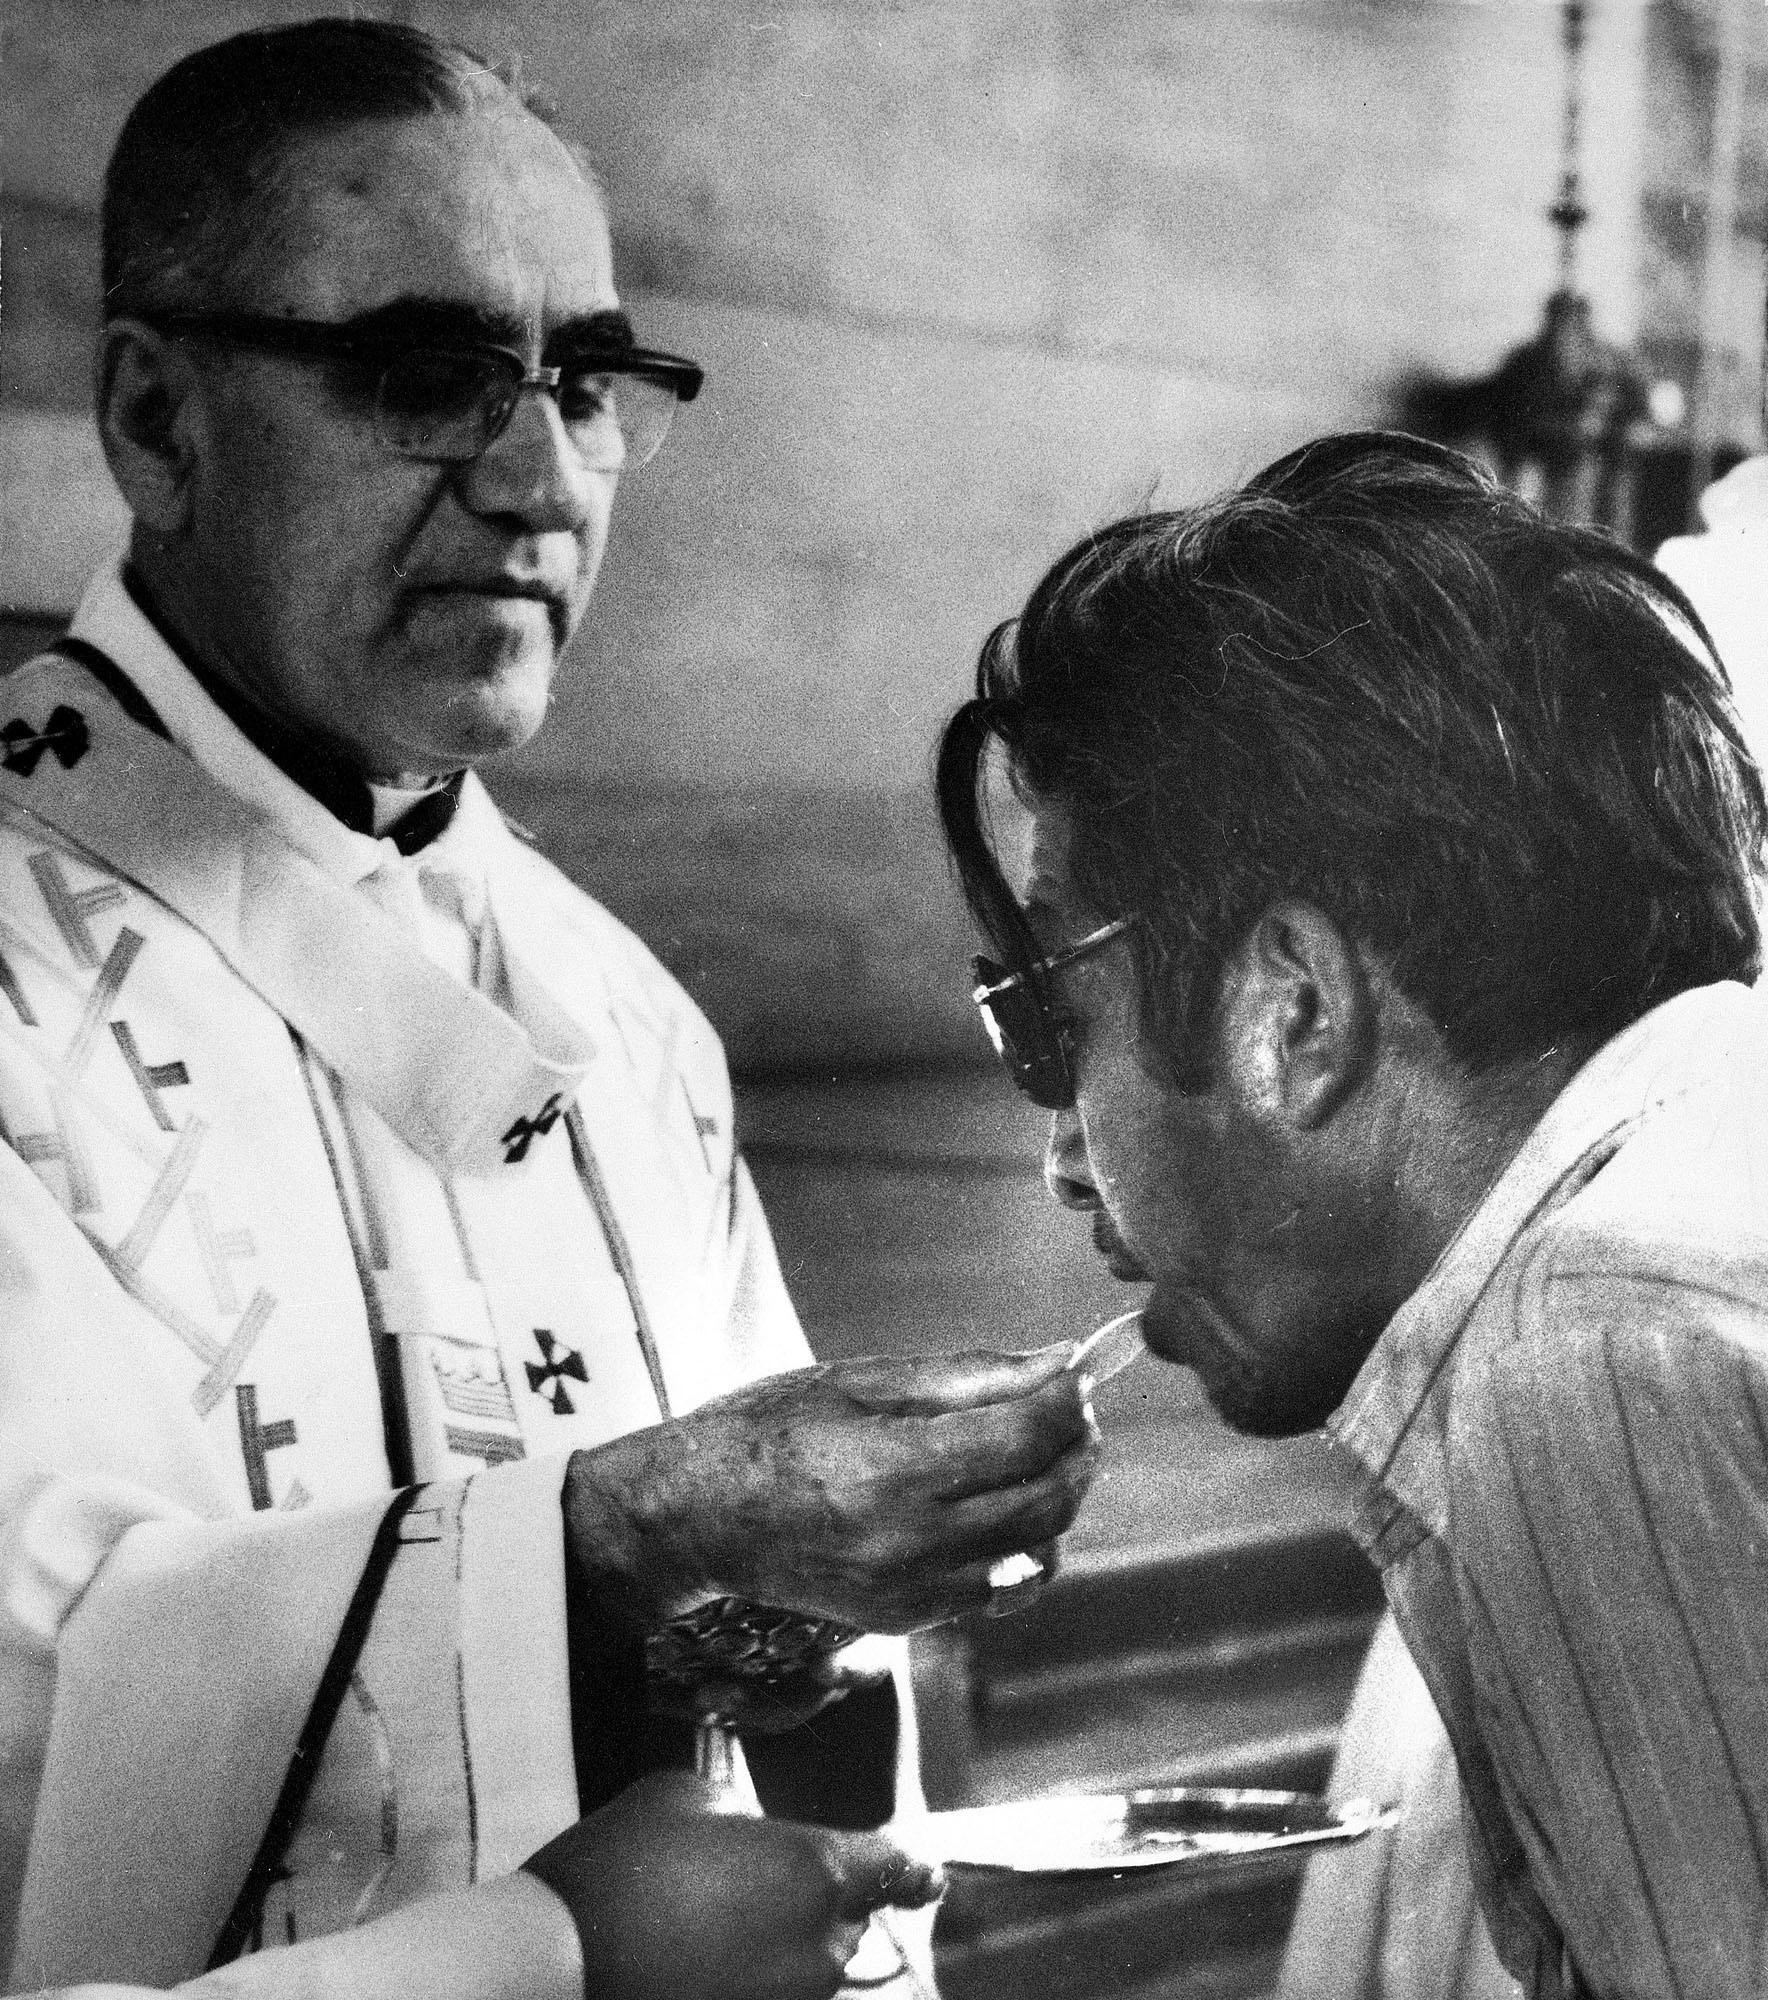 oscar romero archbishop el salvador Oscar arnulfo romero, or archbishop romero of el salvador as he is better  known, was both a man of ideas and a man intent on spreading them given the.